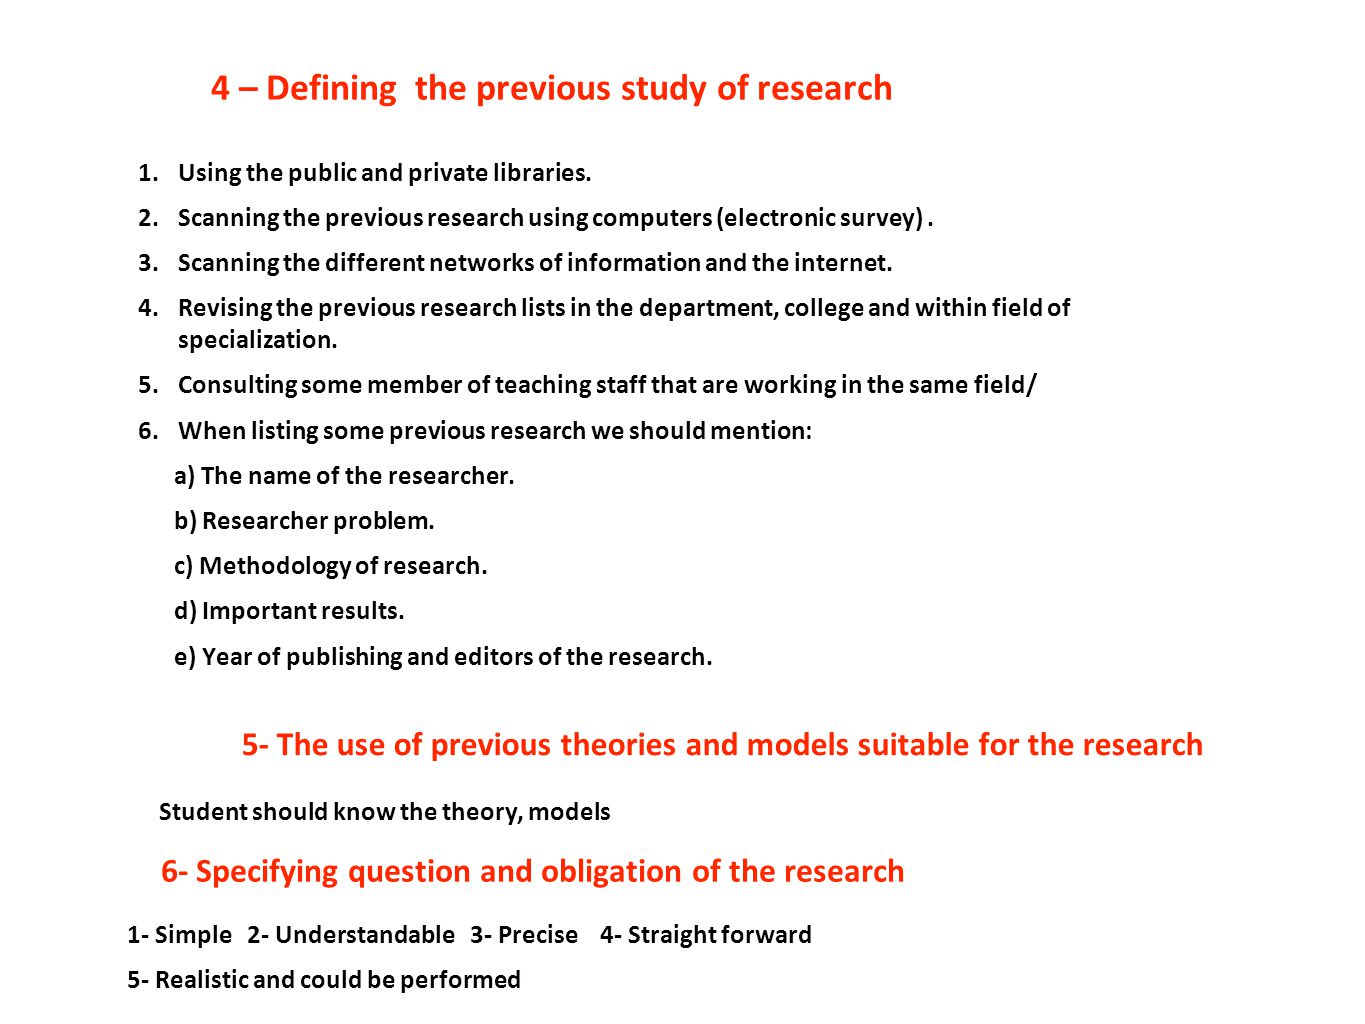 4 – Defining the previous study of research